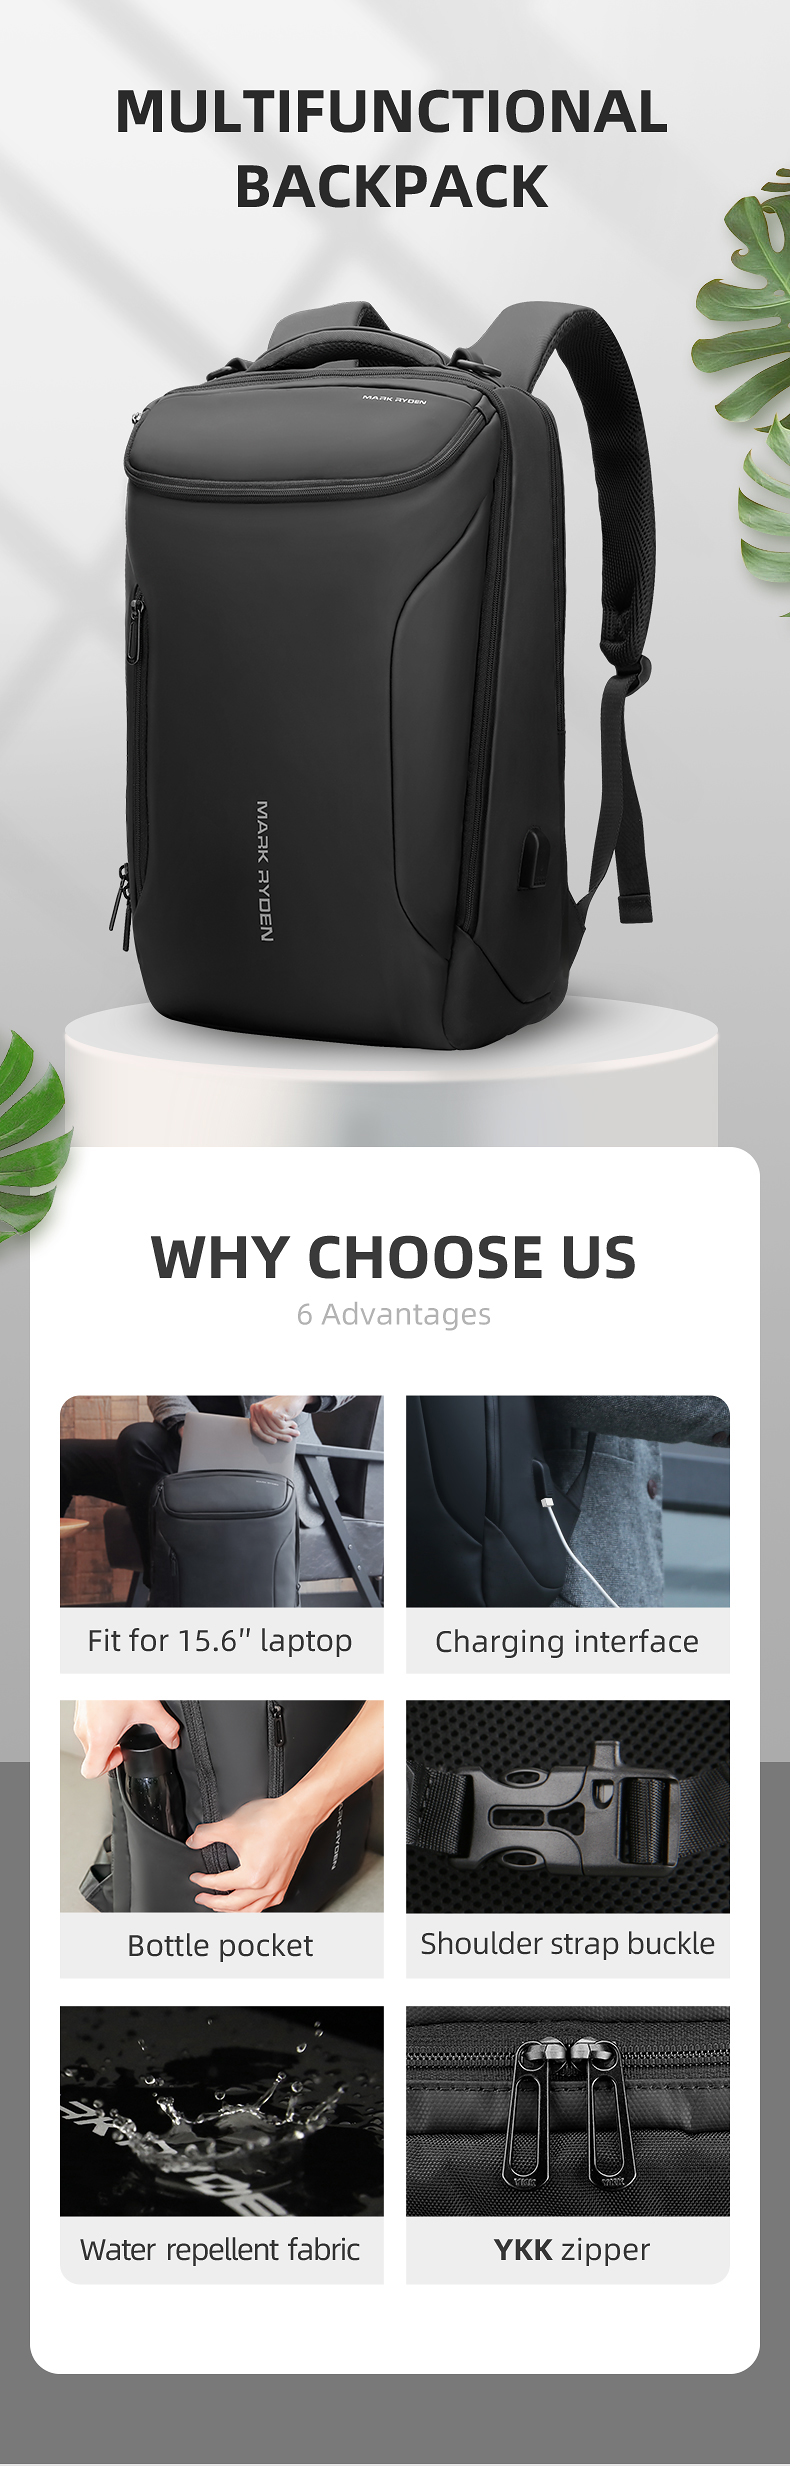 Hdcff5a2a665a4b6786fd4104f10151c53 - Mark Ryden New Anti-thief Fashion Men Backpack Multifunctional Waterproof 15.6 inch Laptop Bag Man USB Charging Travel Bag